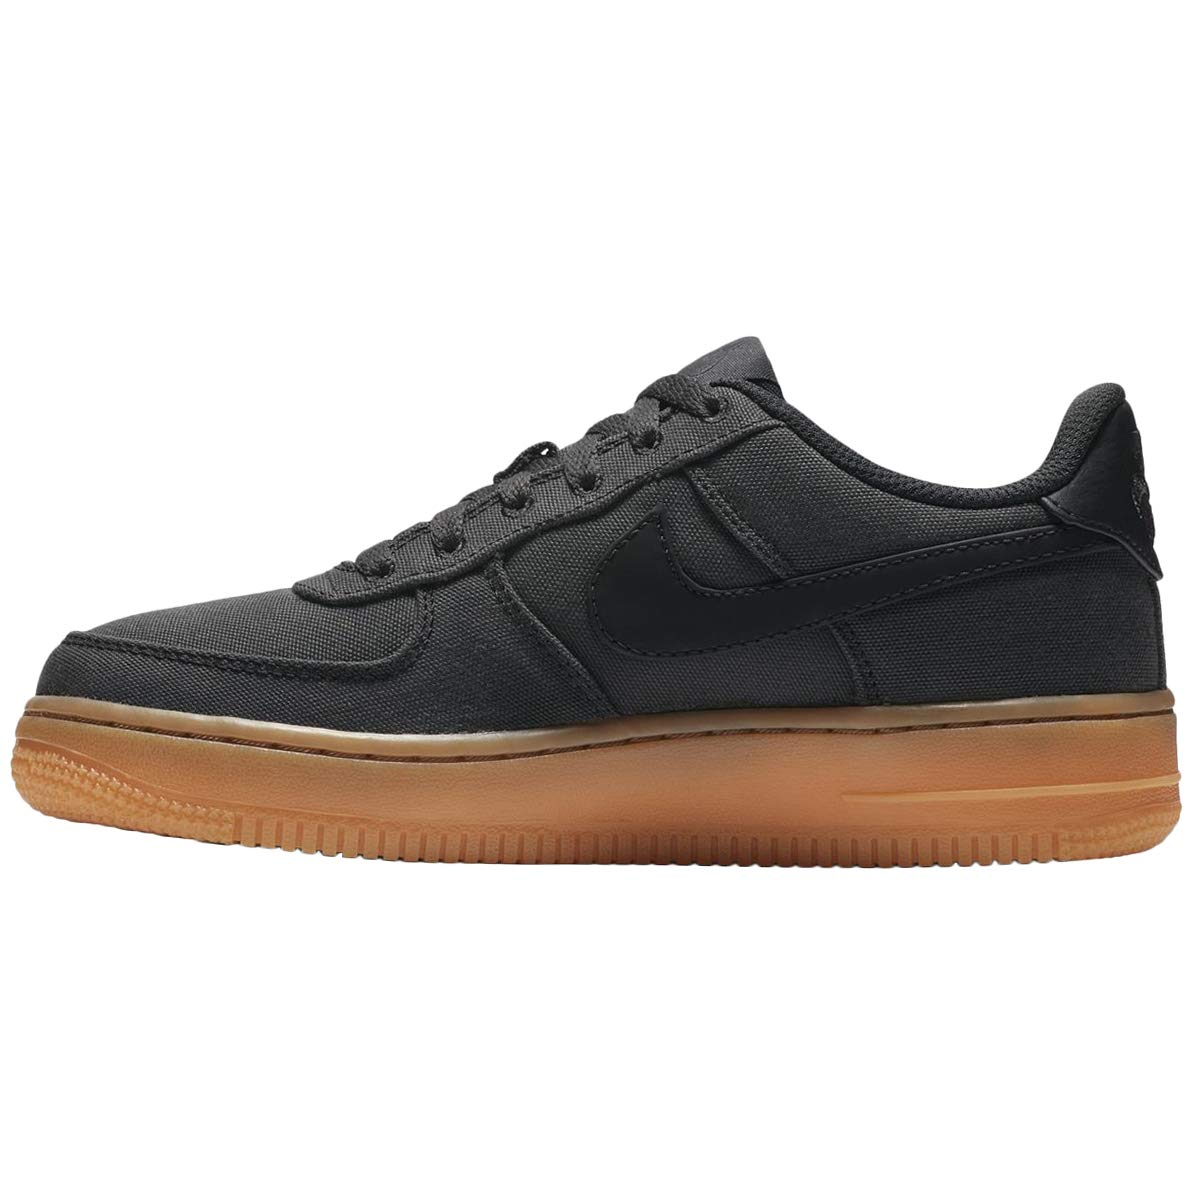 Nike Youth Air Force 1 LV8 Textile Trainers